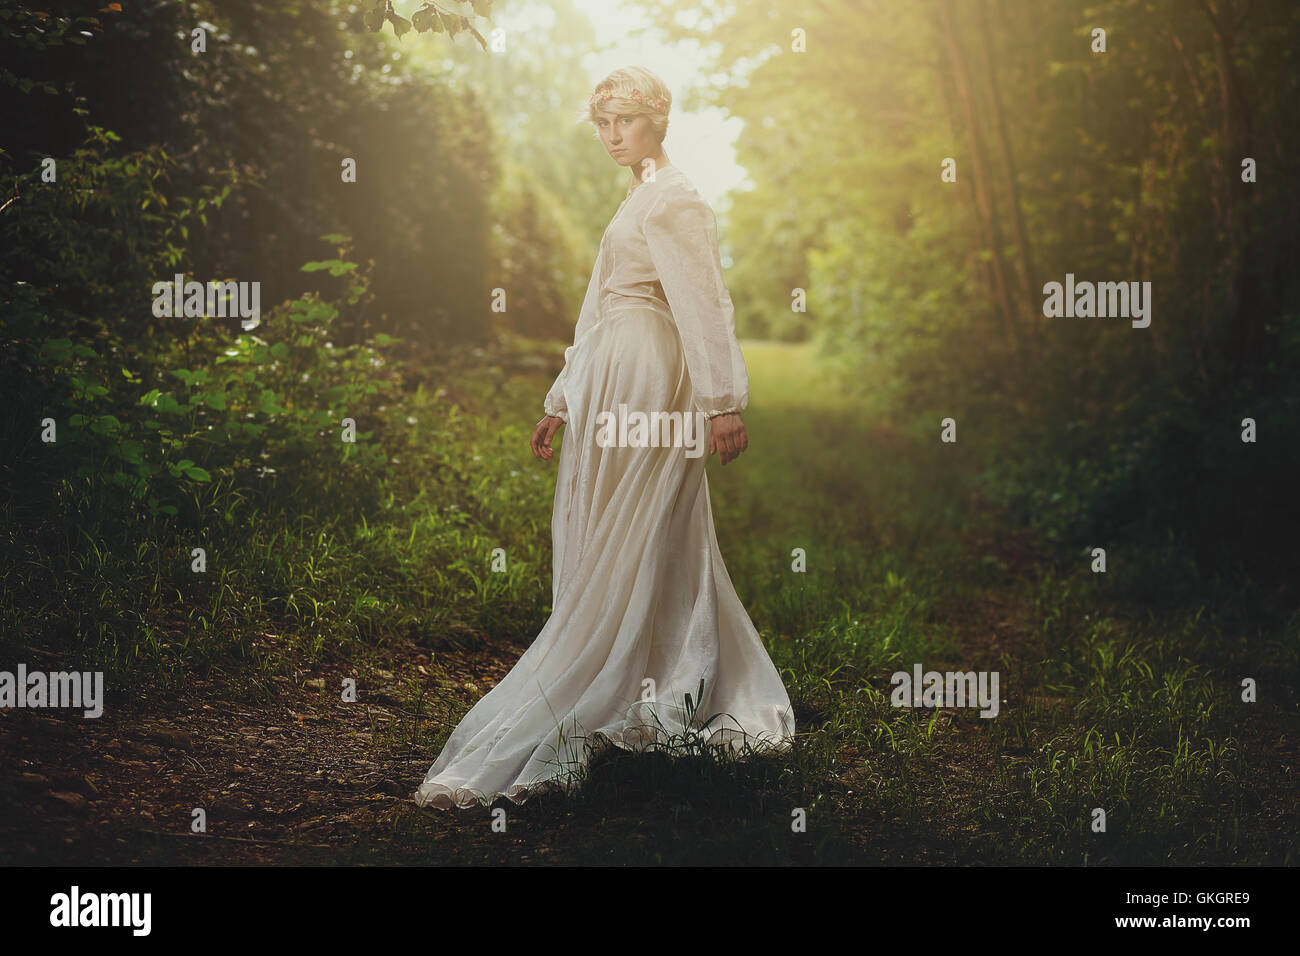 Beautiful fair girl in dreamy woods. Fantasy and surreal - Stock Image